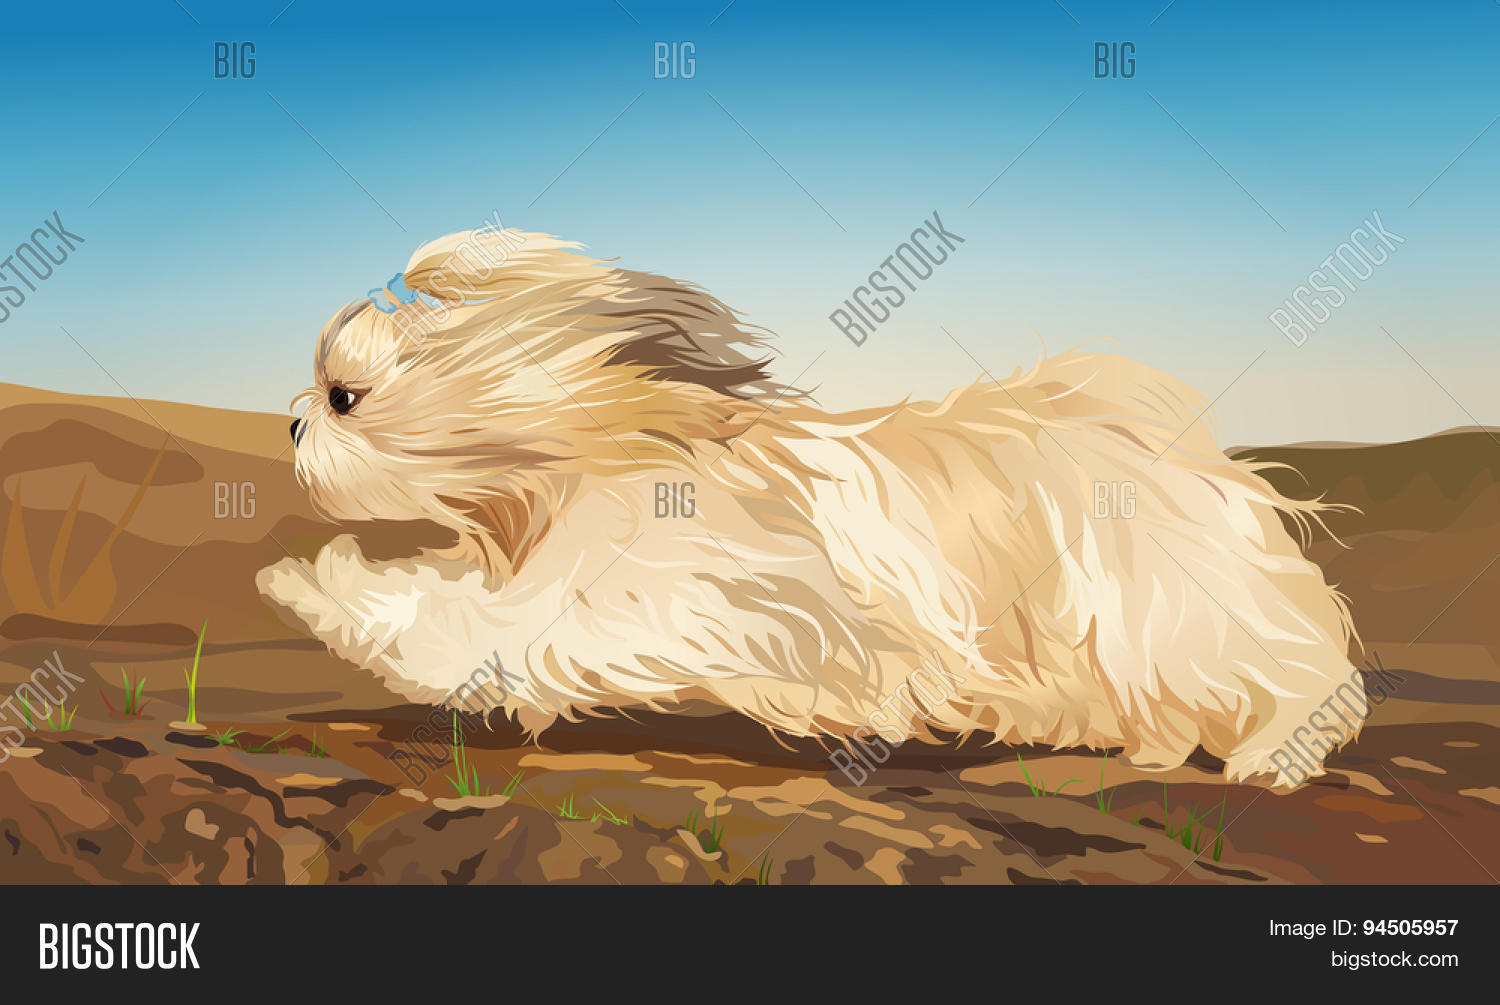 Shih Tzu Dog Fast Vector Photo Free Trial Bigstock